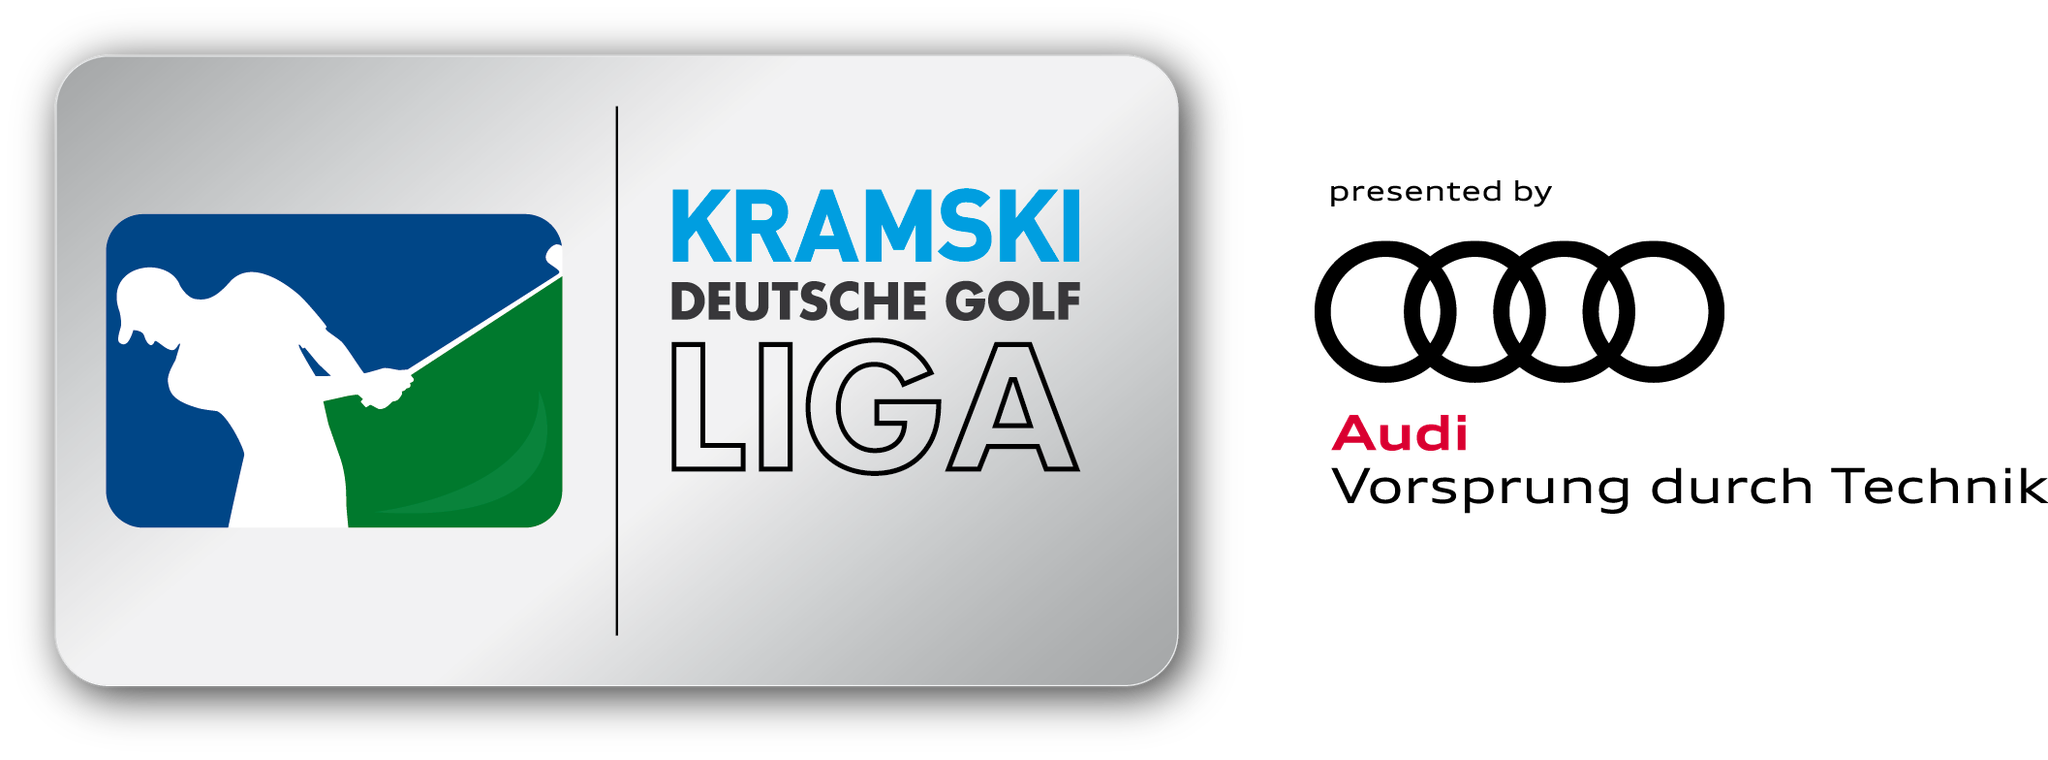 Logo KRAMSKI Deutsche Golf Liga presented by Audi